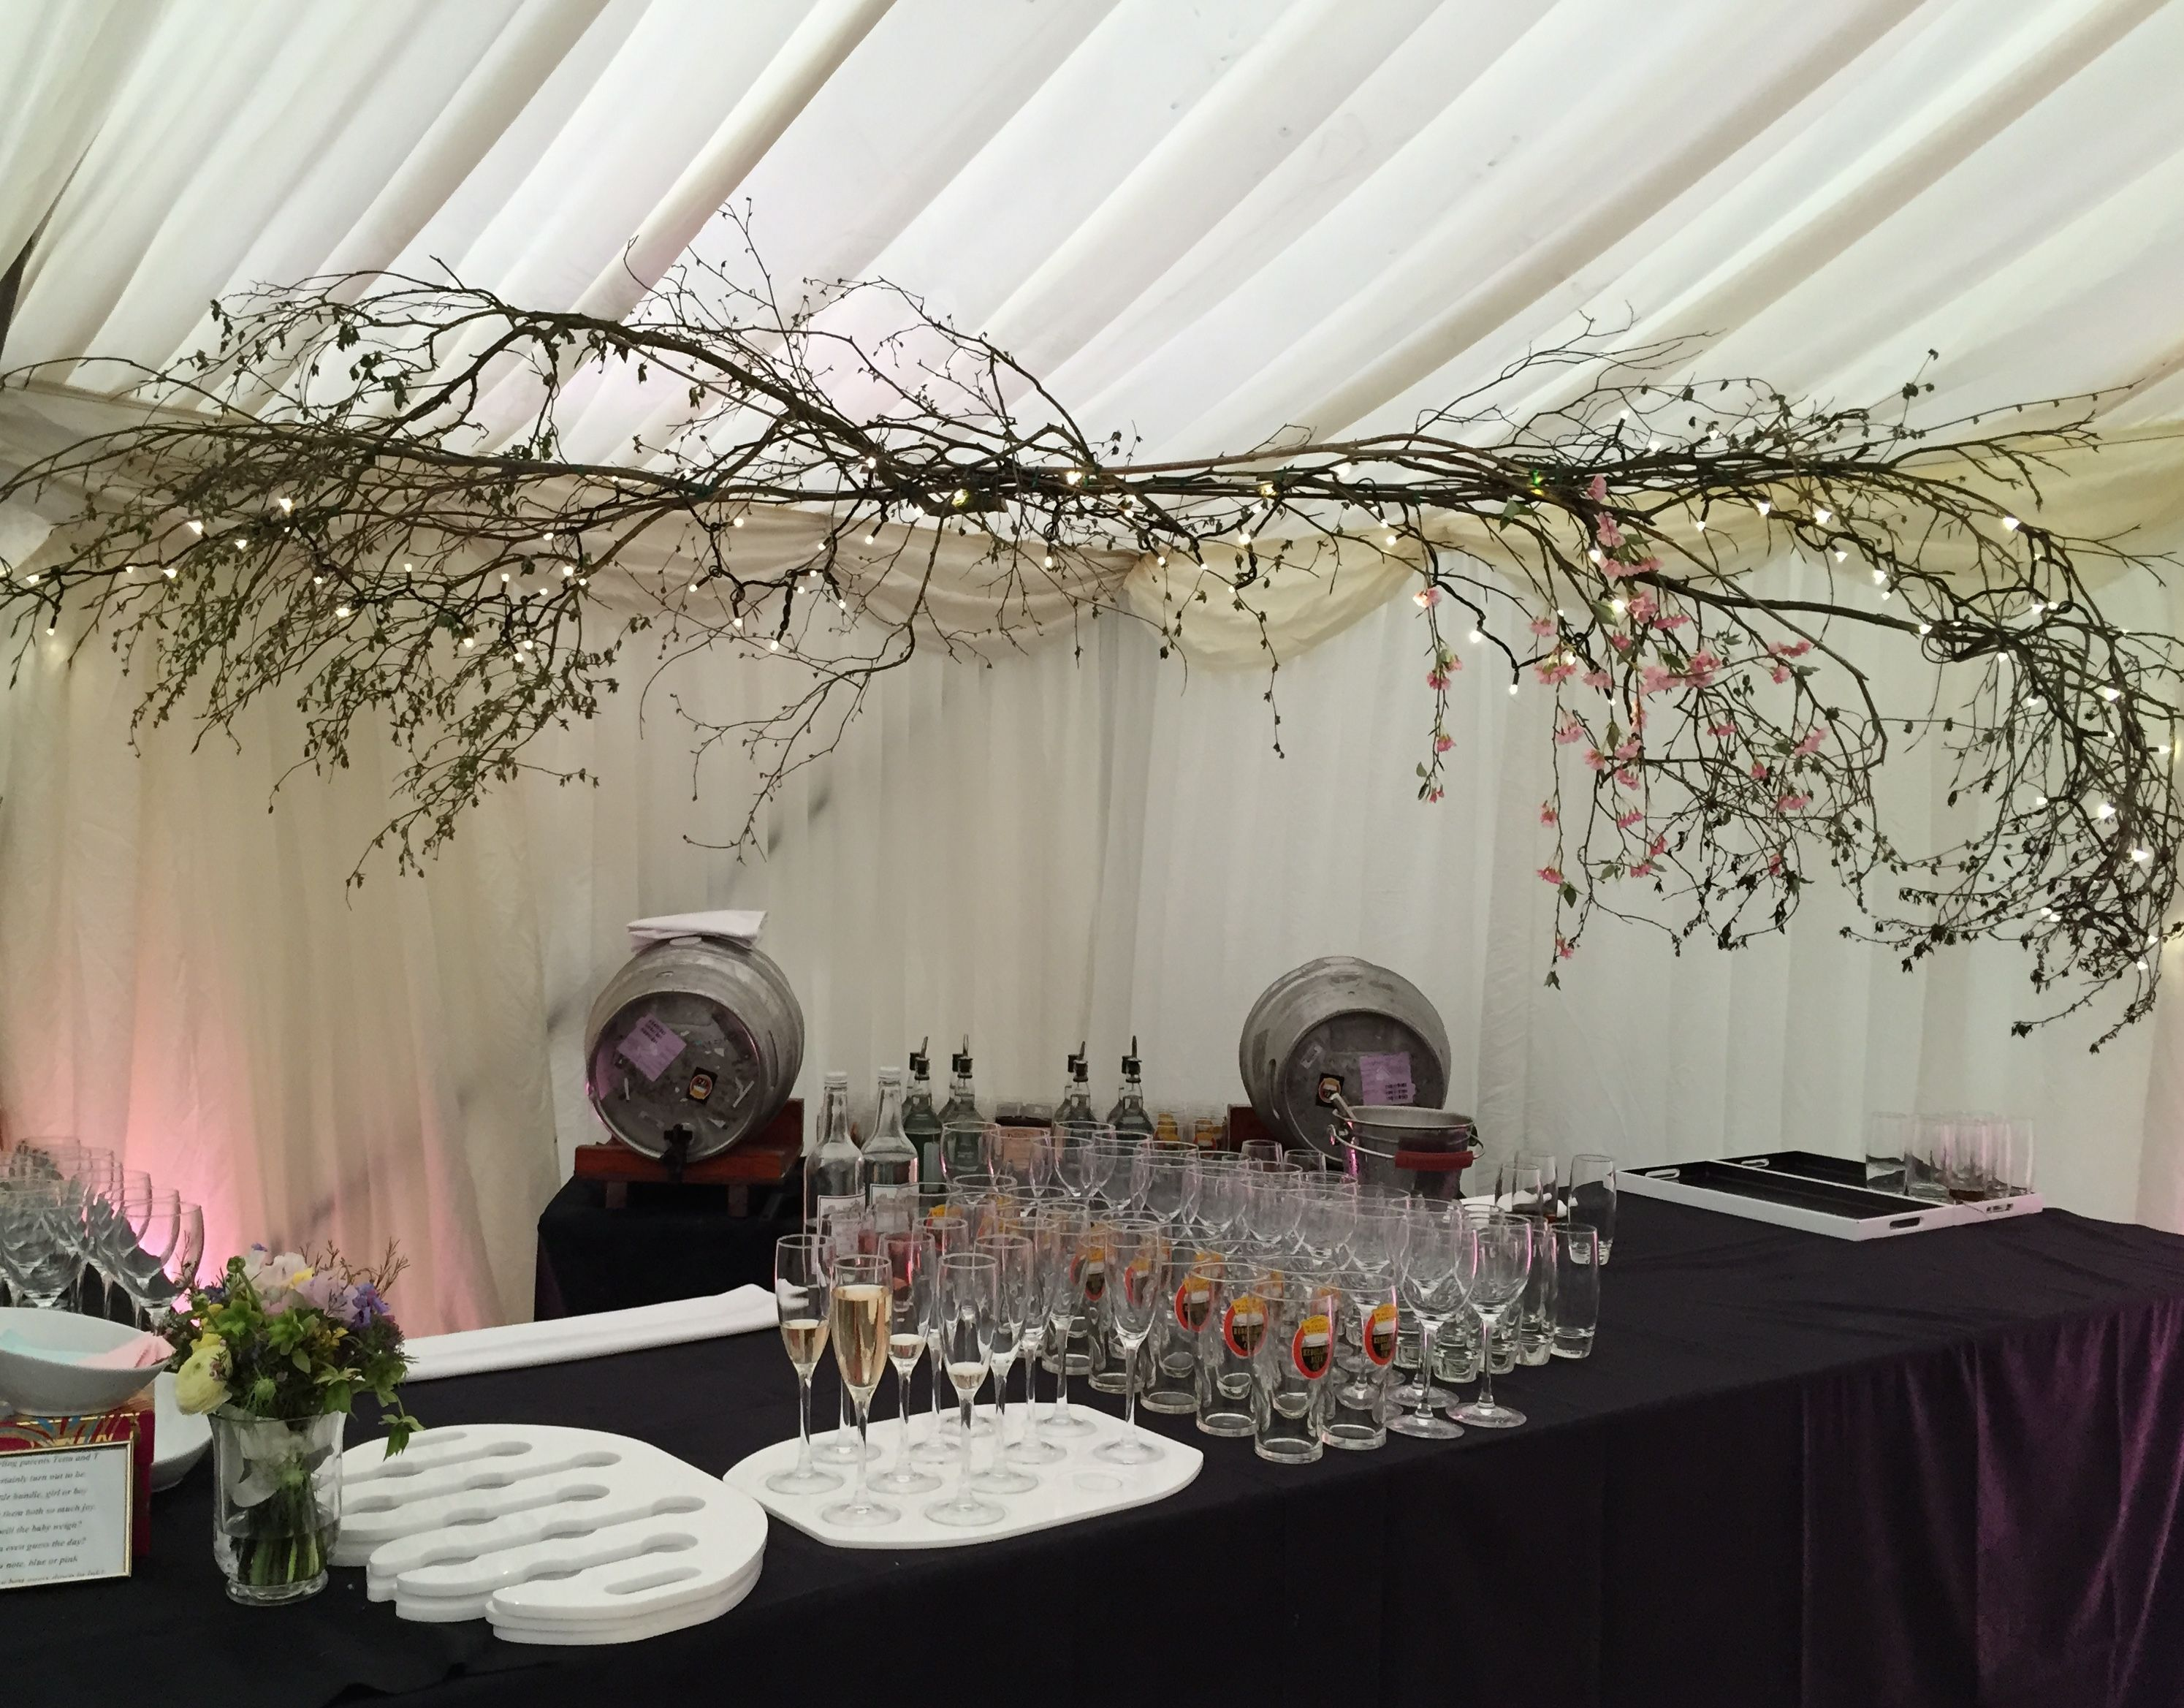 Spring blossom flowers decorating bar area in wedding marquee ...